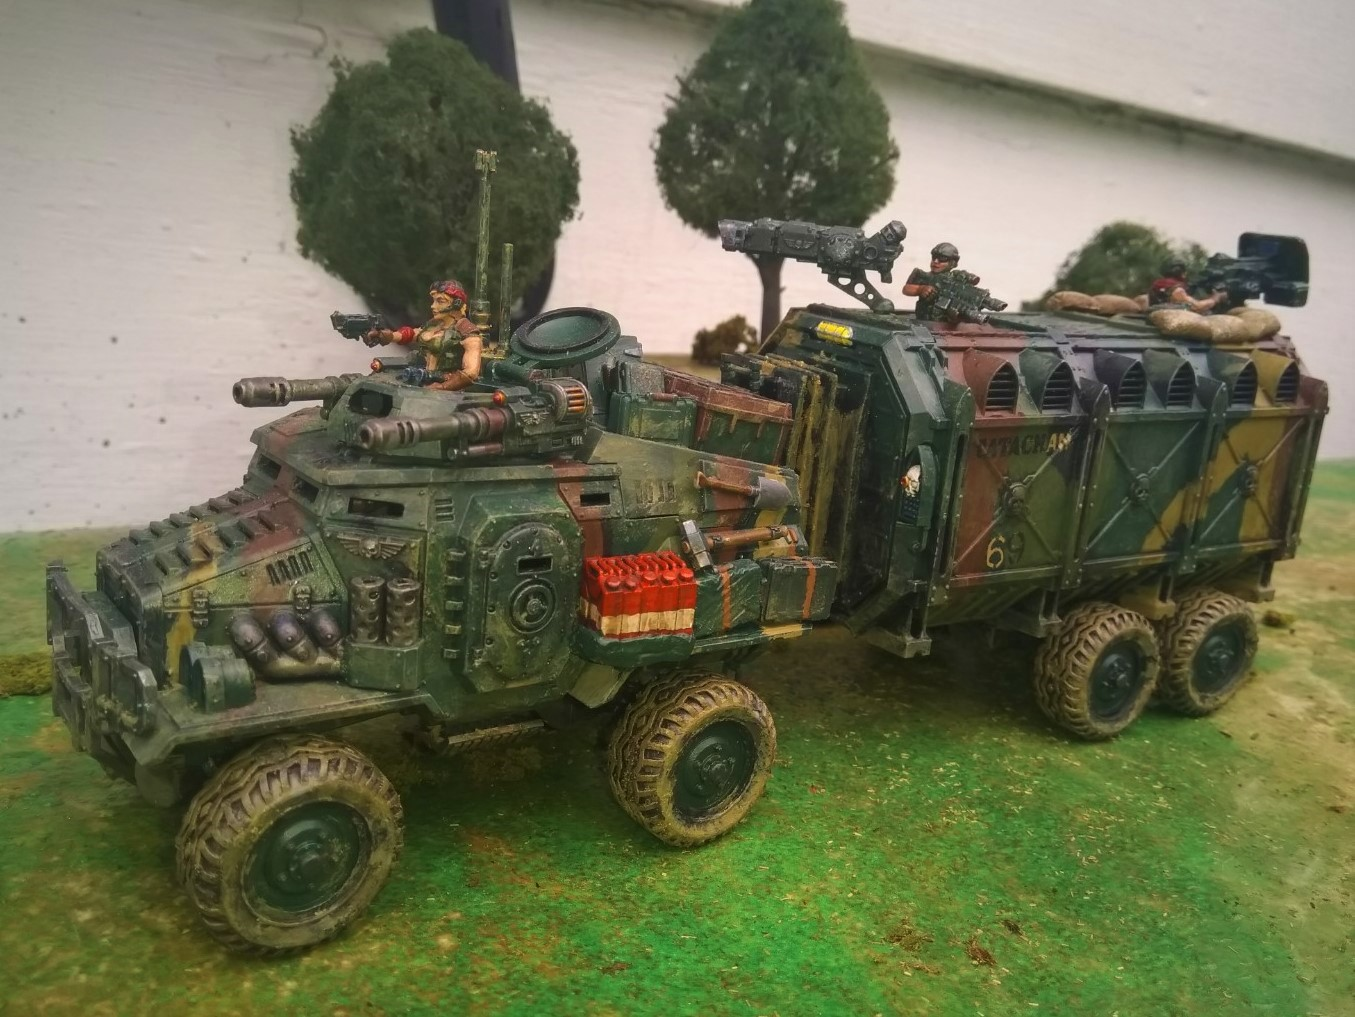 Armored utility vehicle used by the Imperium of man the Canyonero is often used an an APC supply hauler or prisoner transport and on Imperial Guard convoy operations